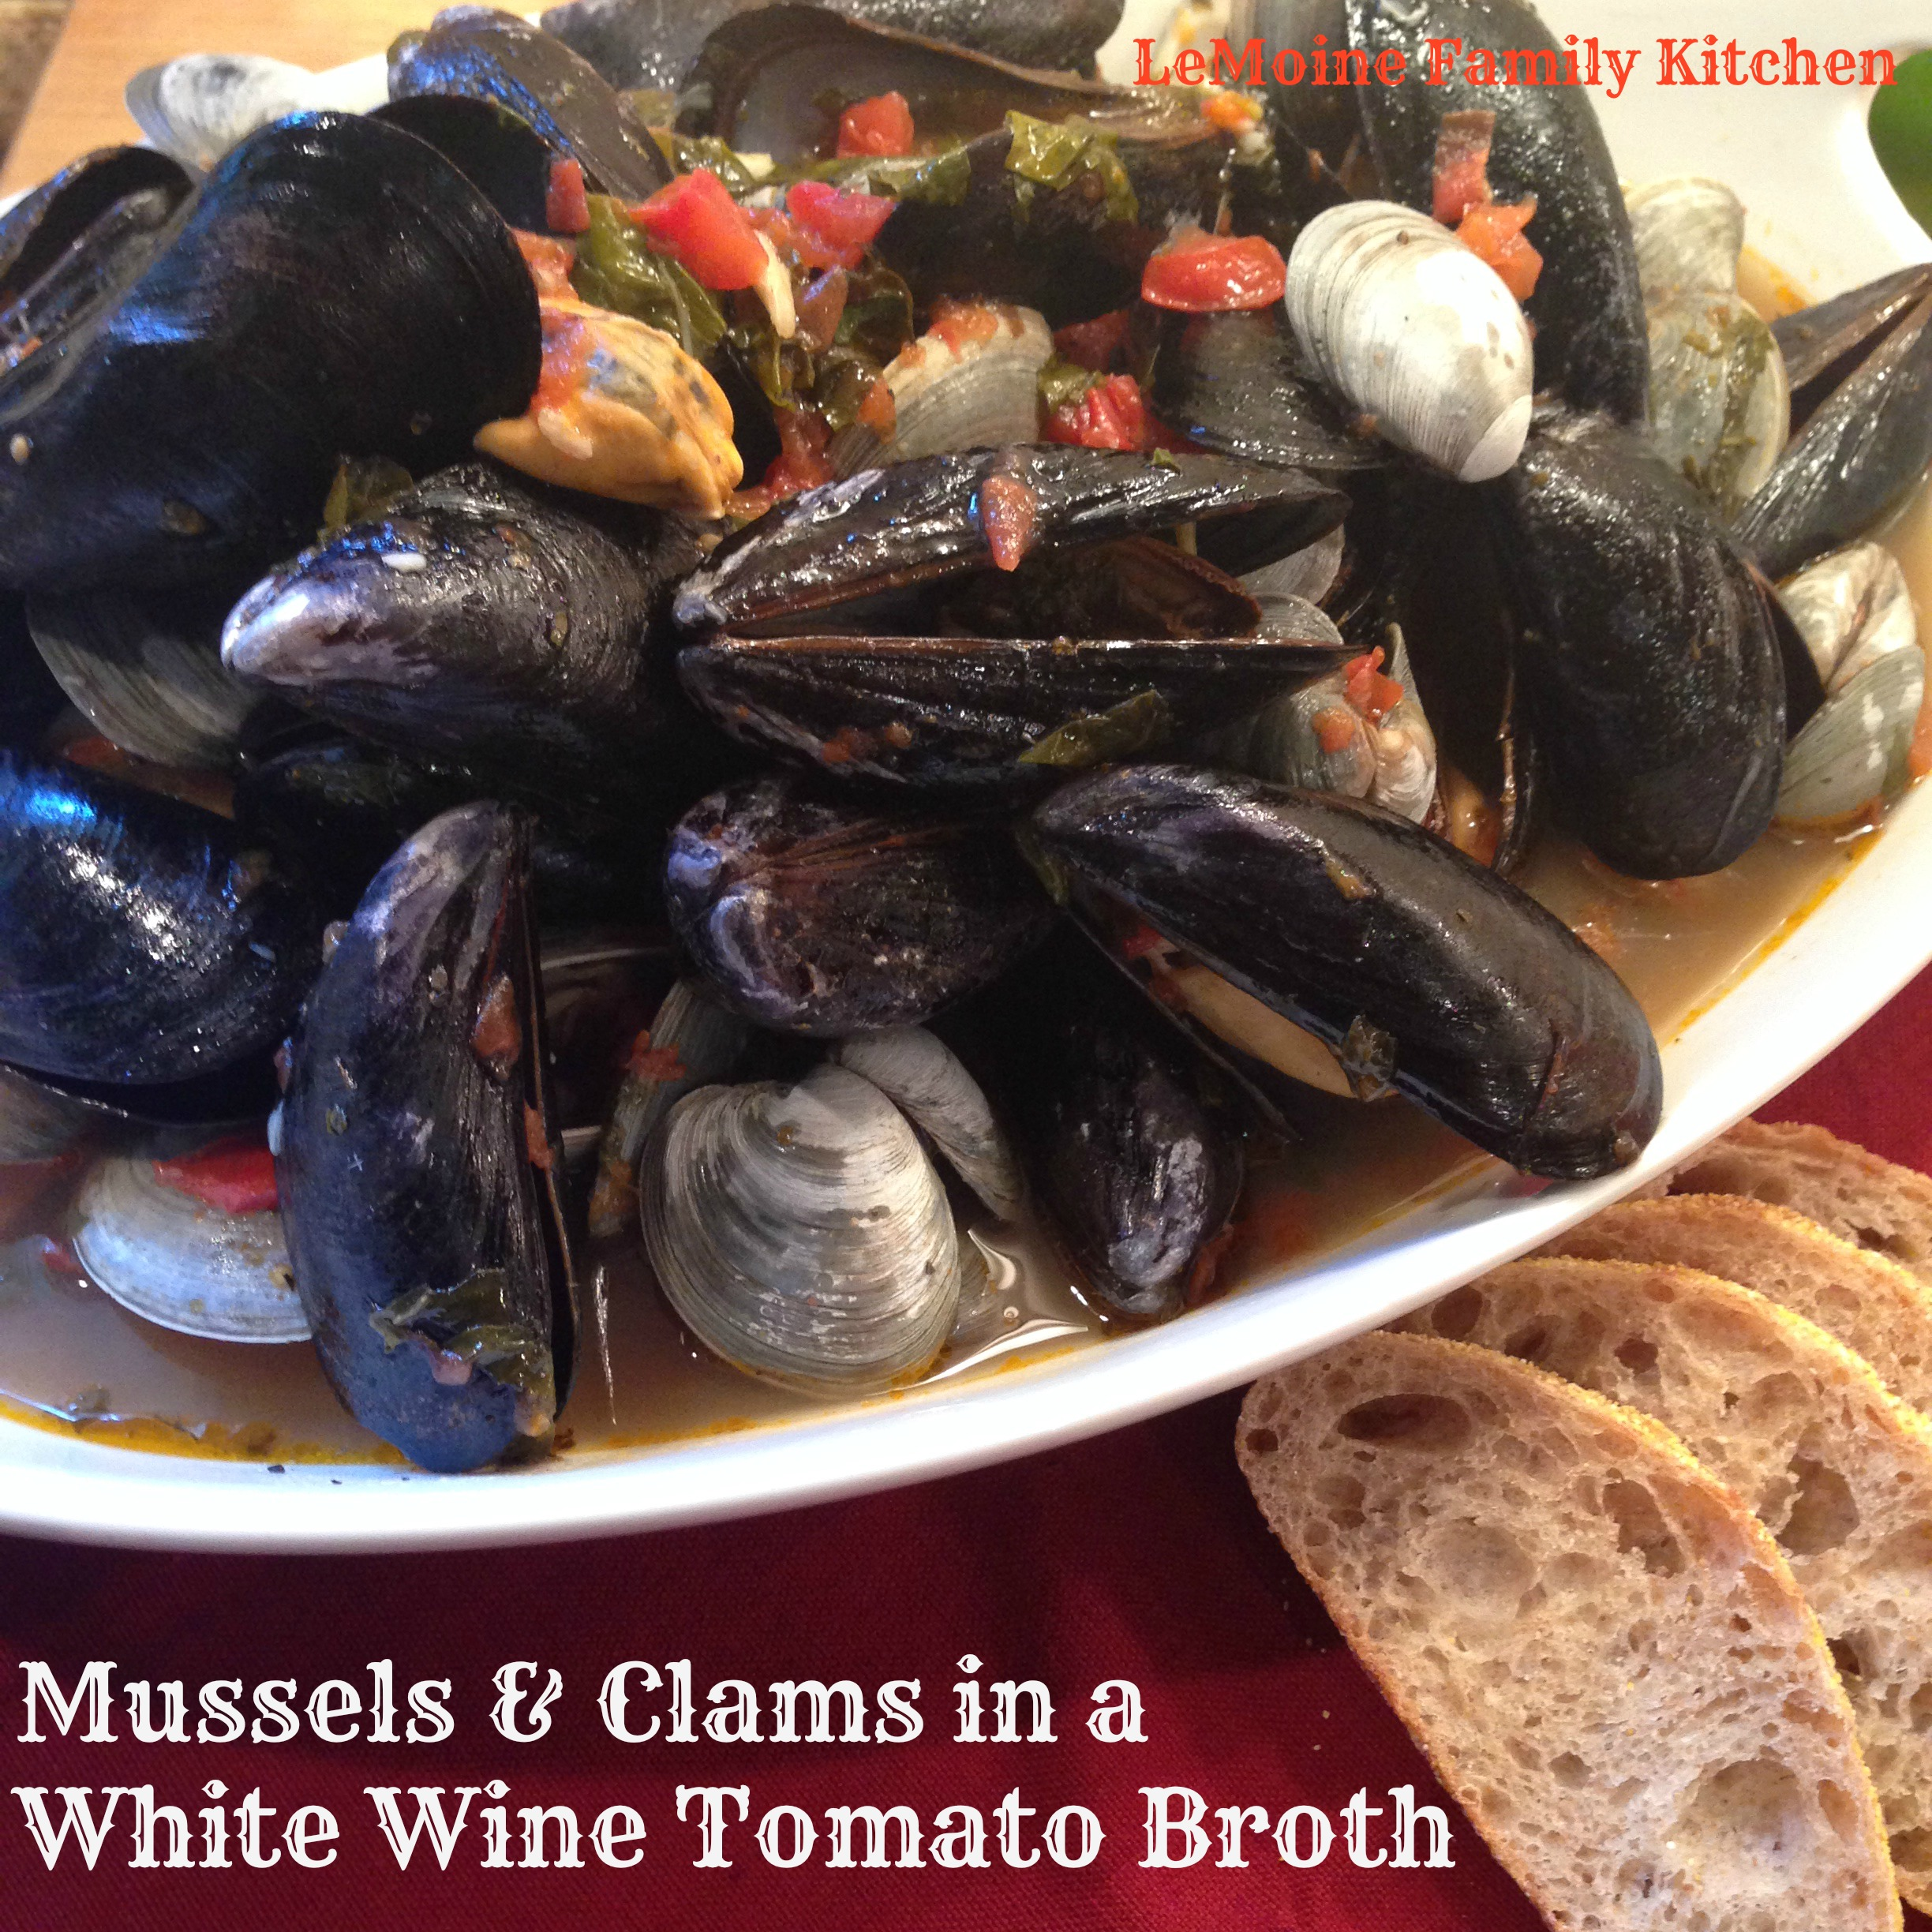 Mussels & Clams in a White Wine Tomato Broth - LeMoine Family Kitchen